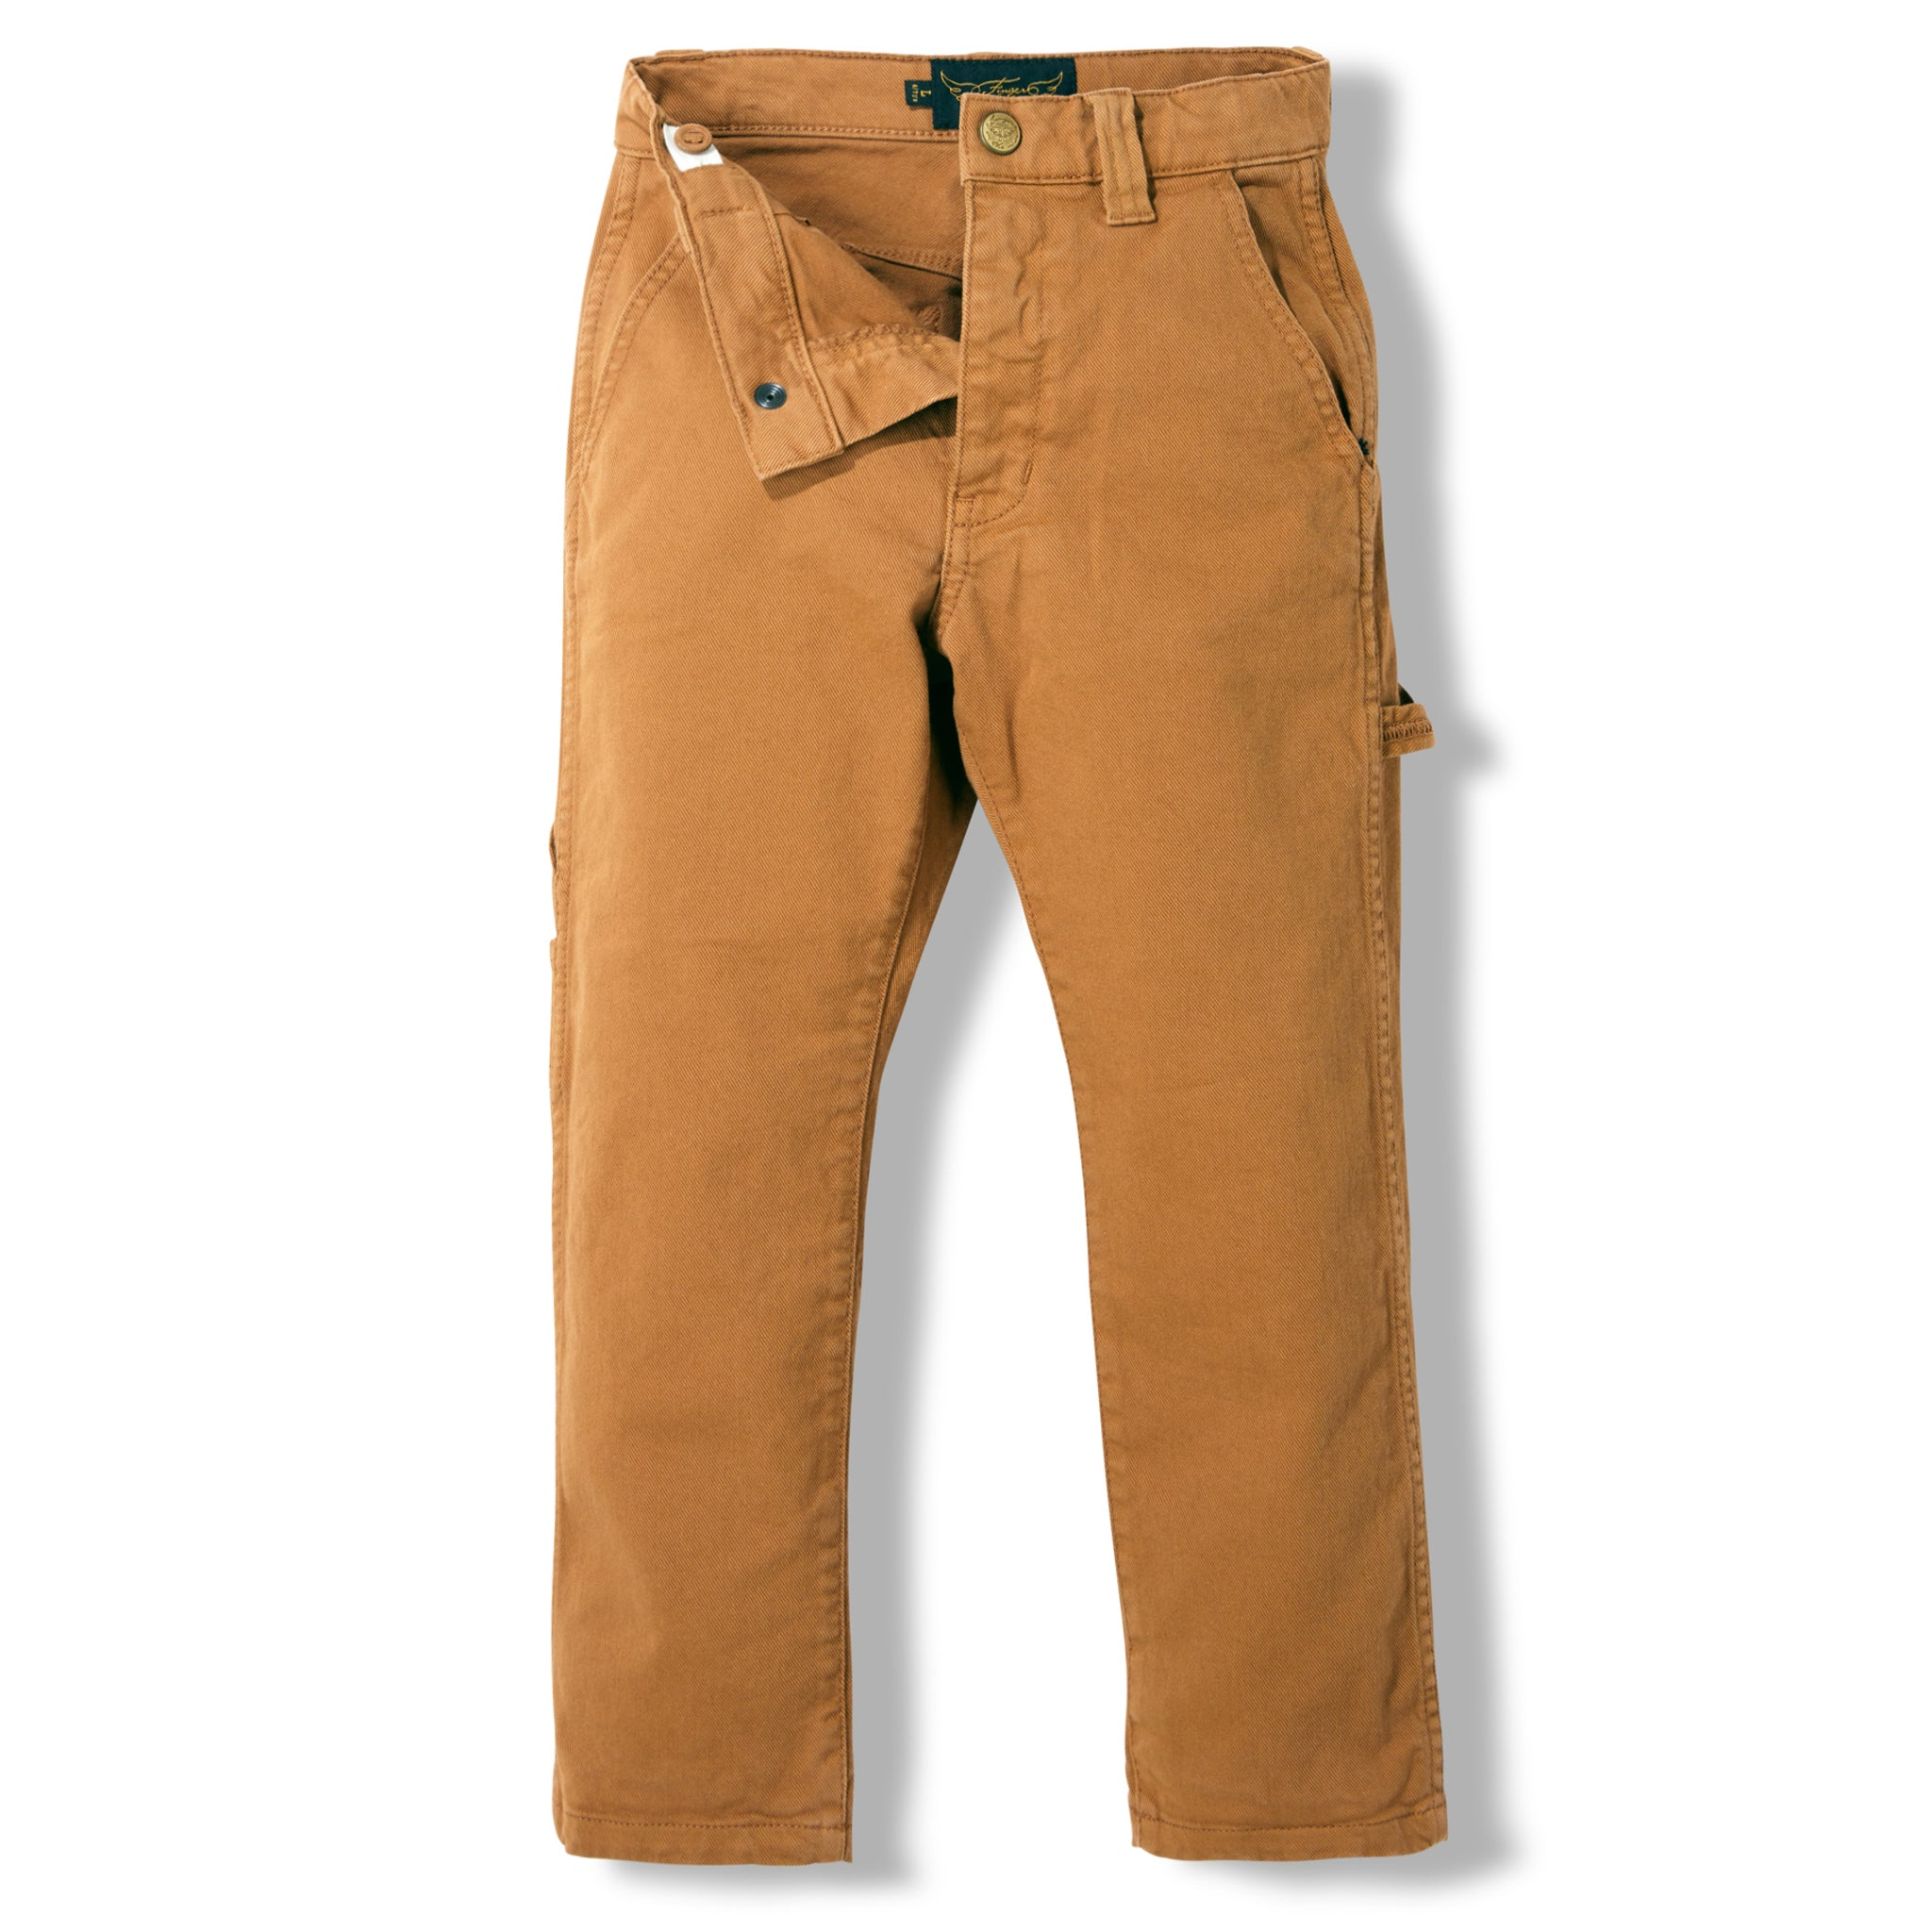 CARPENTER Caramel - MultiPocket Baggy Fit Pants 2